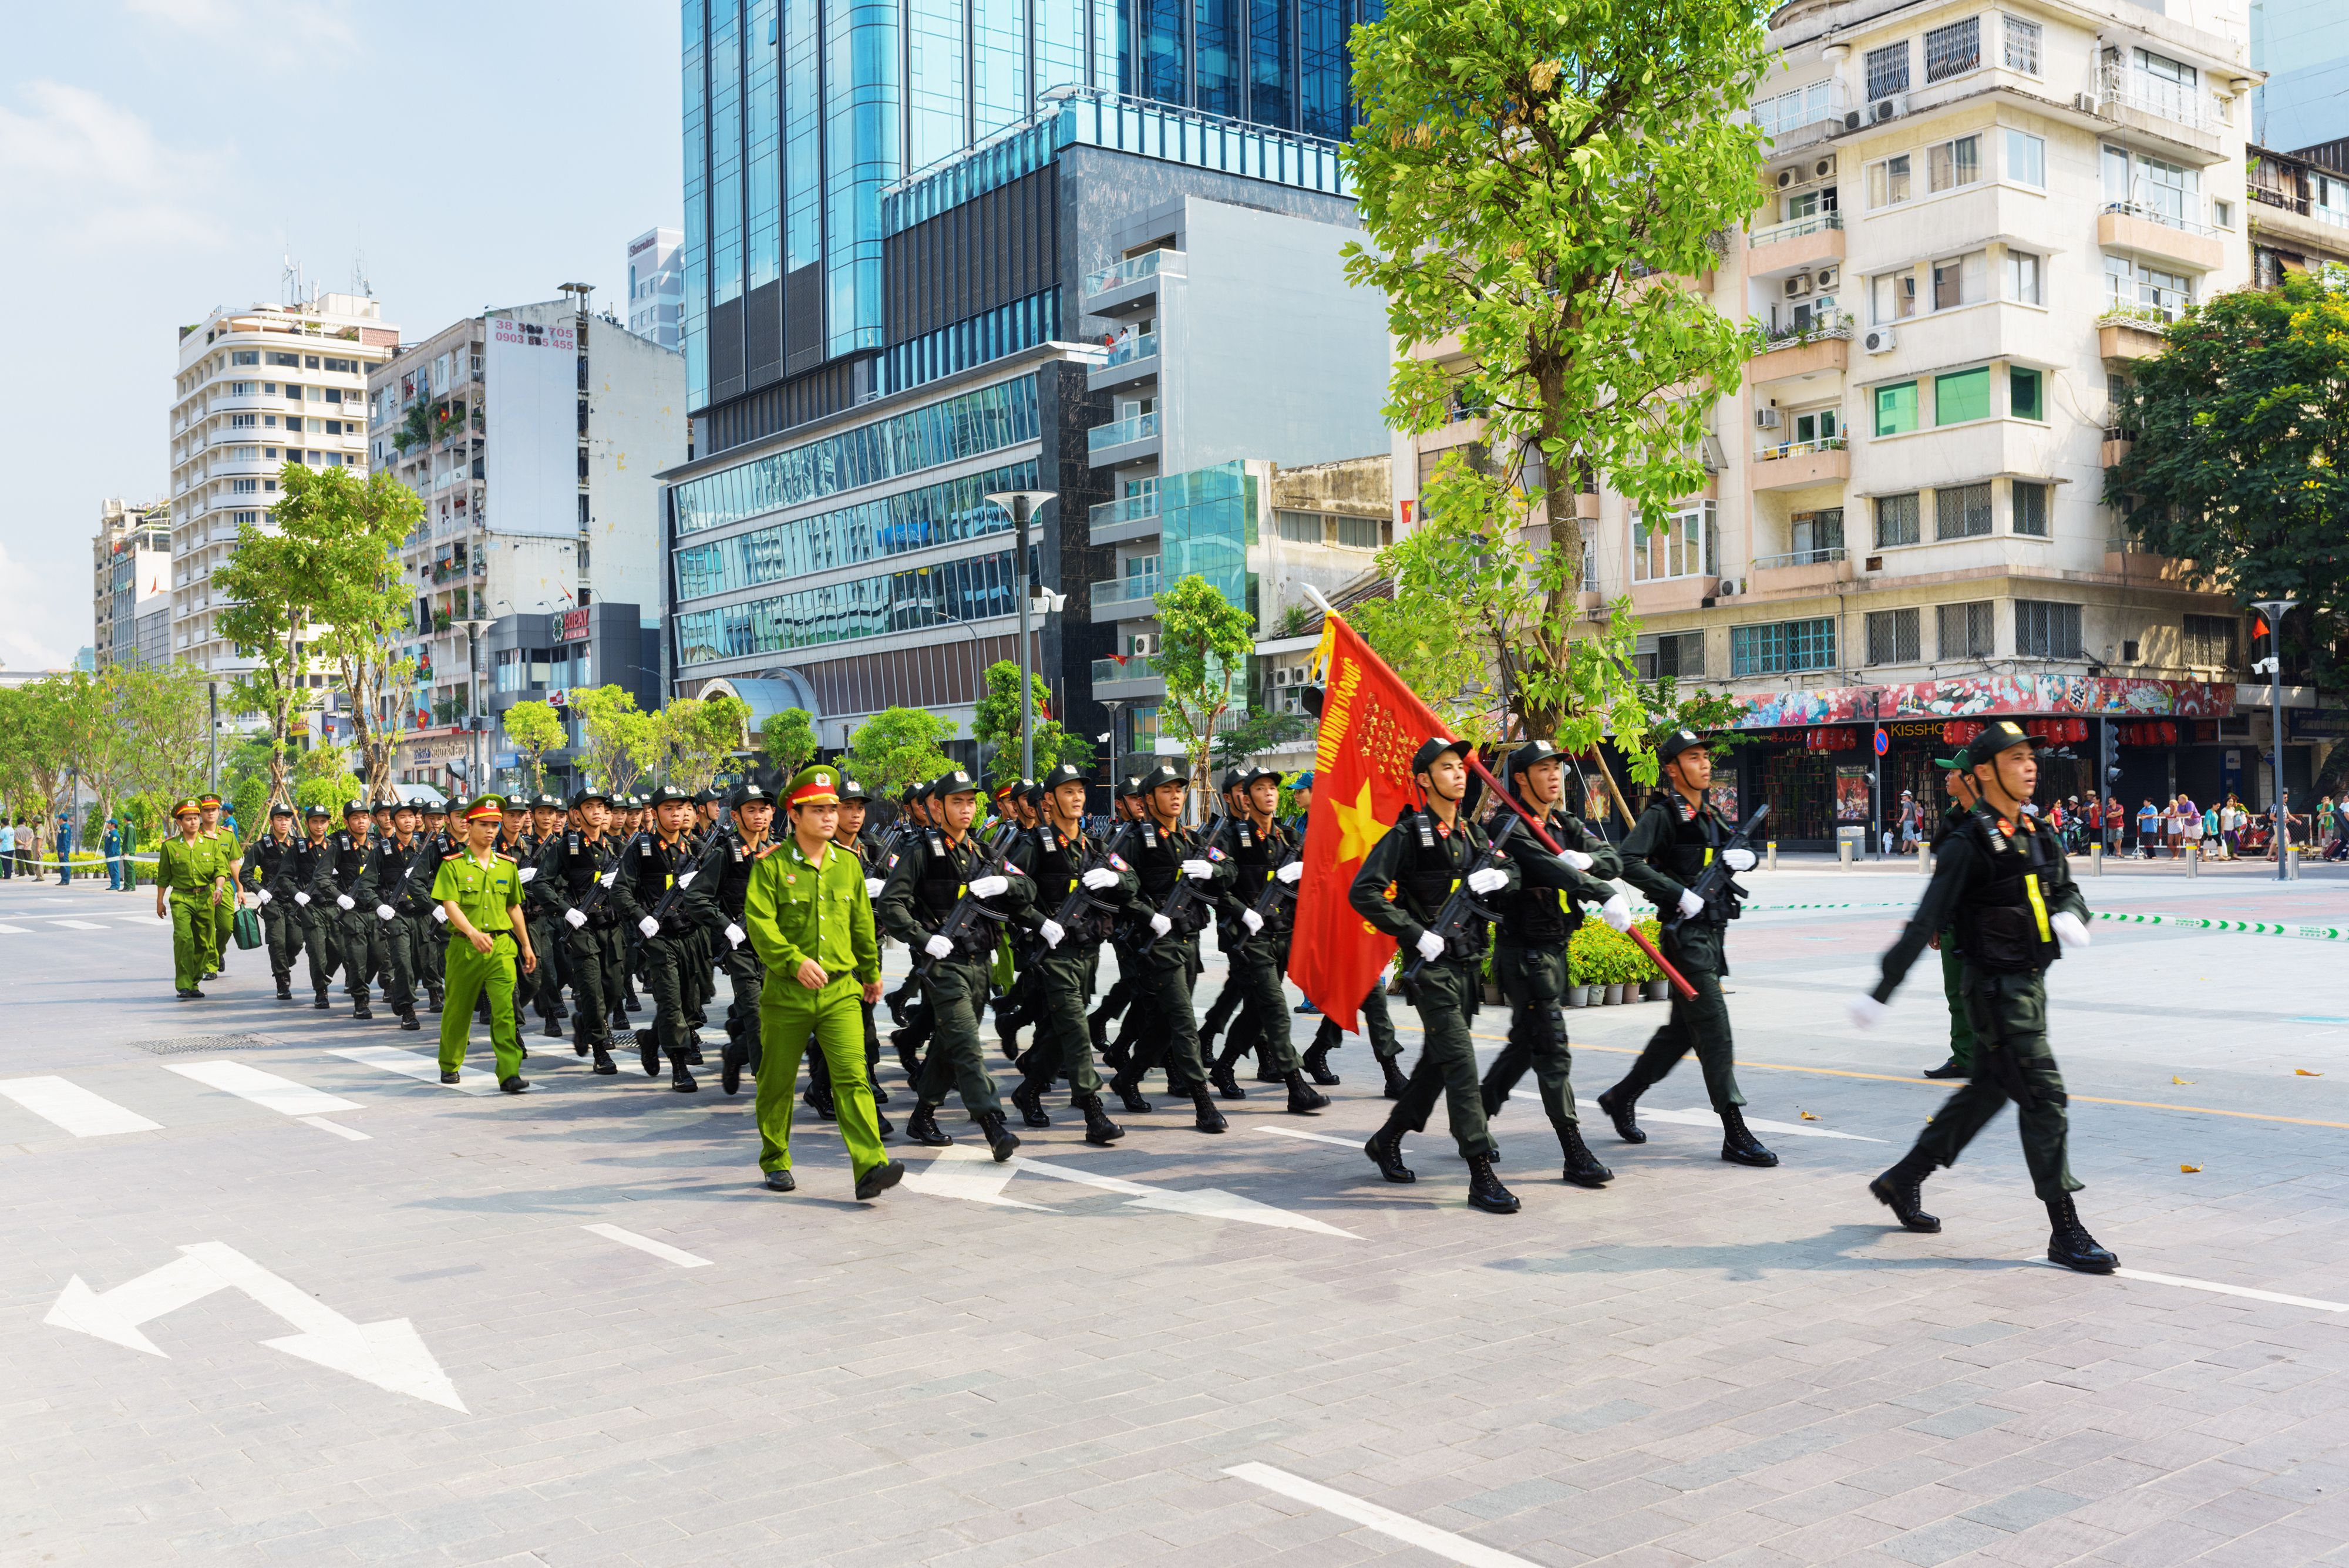 Military parade marching for Reunification Day